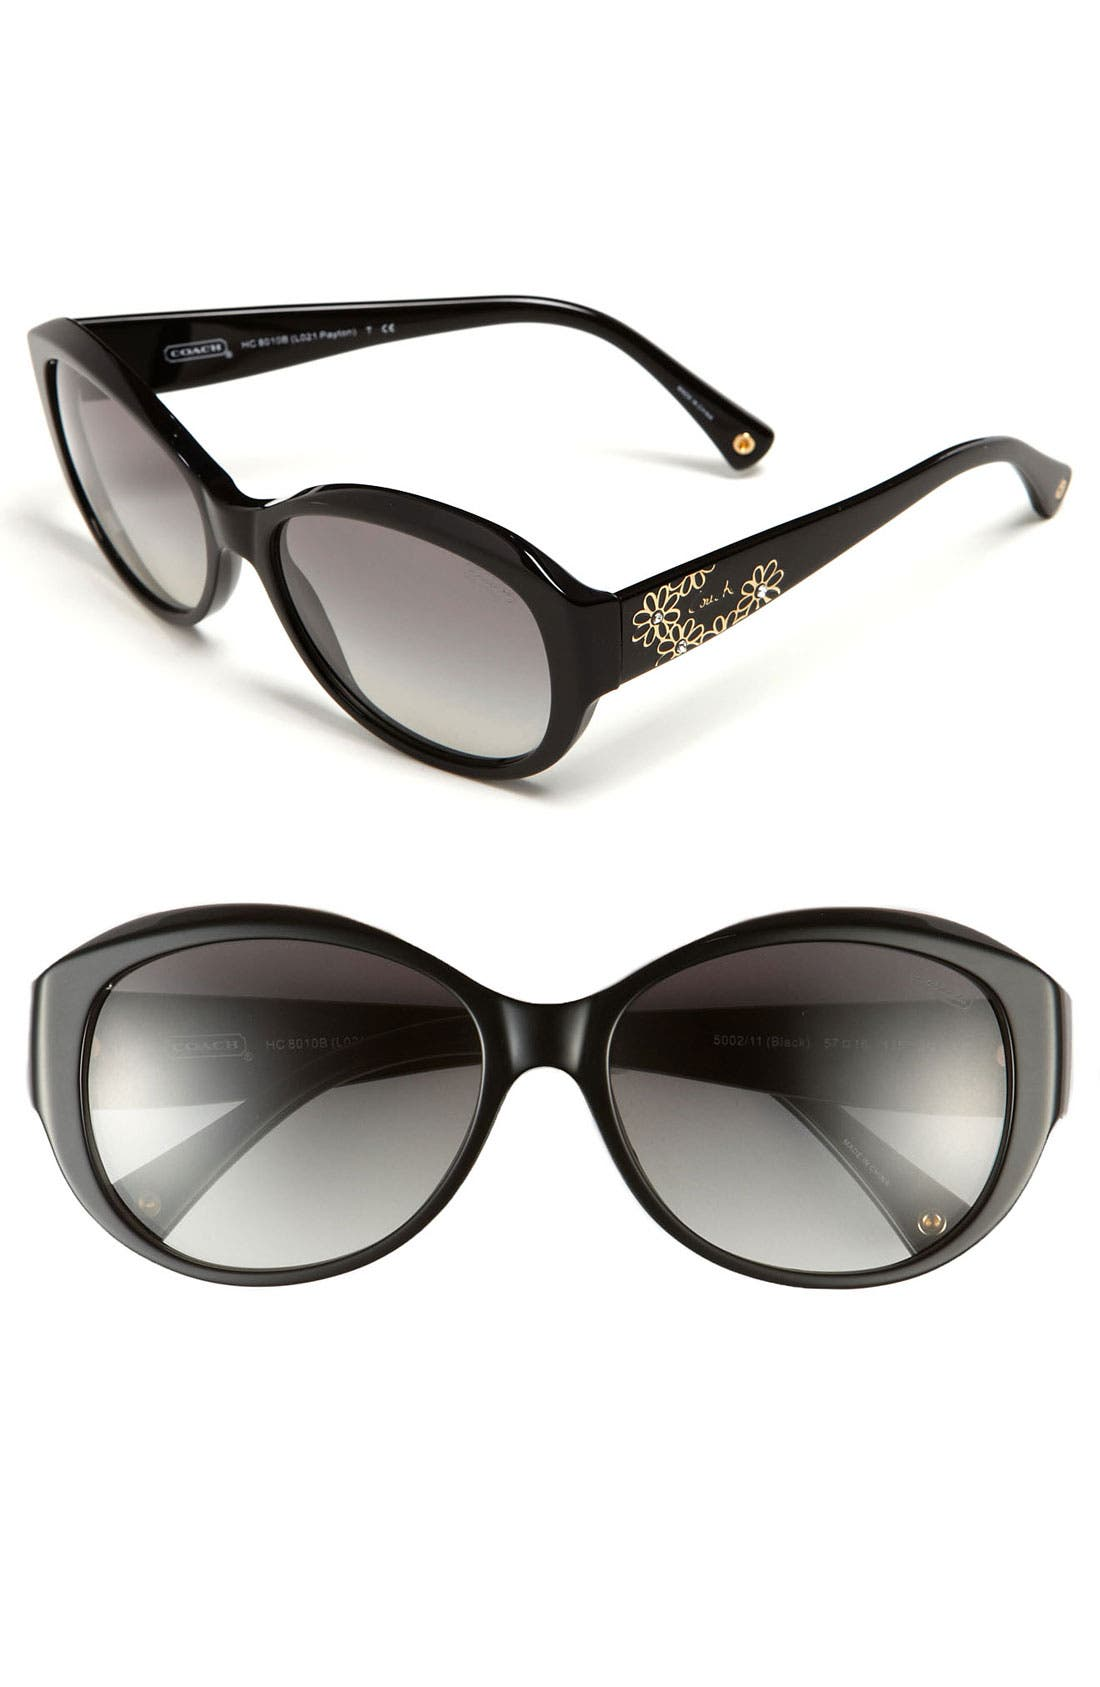 Main Image - COACH Flower Temple Sunglasses